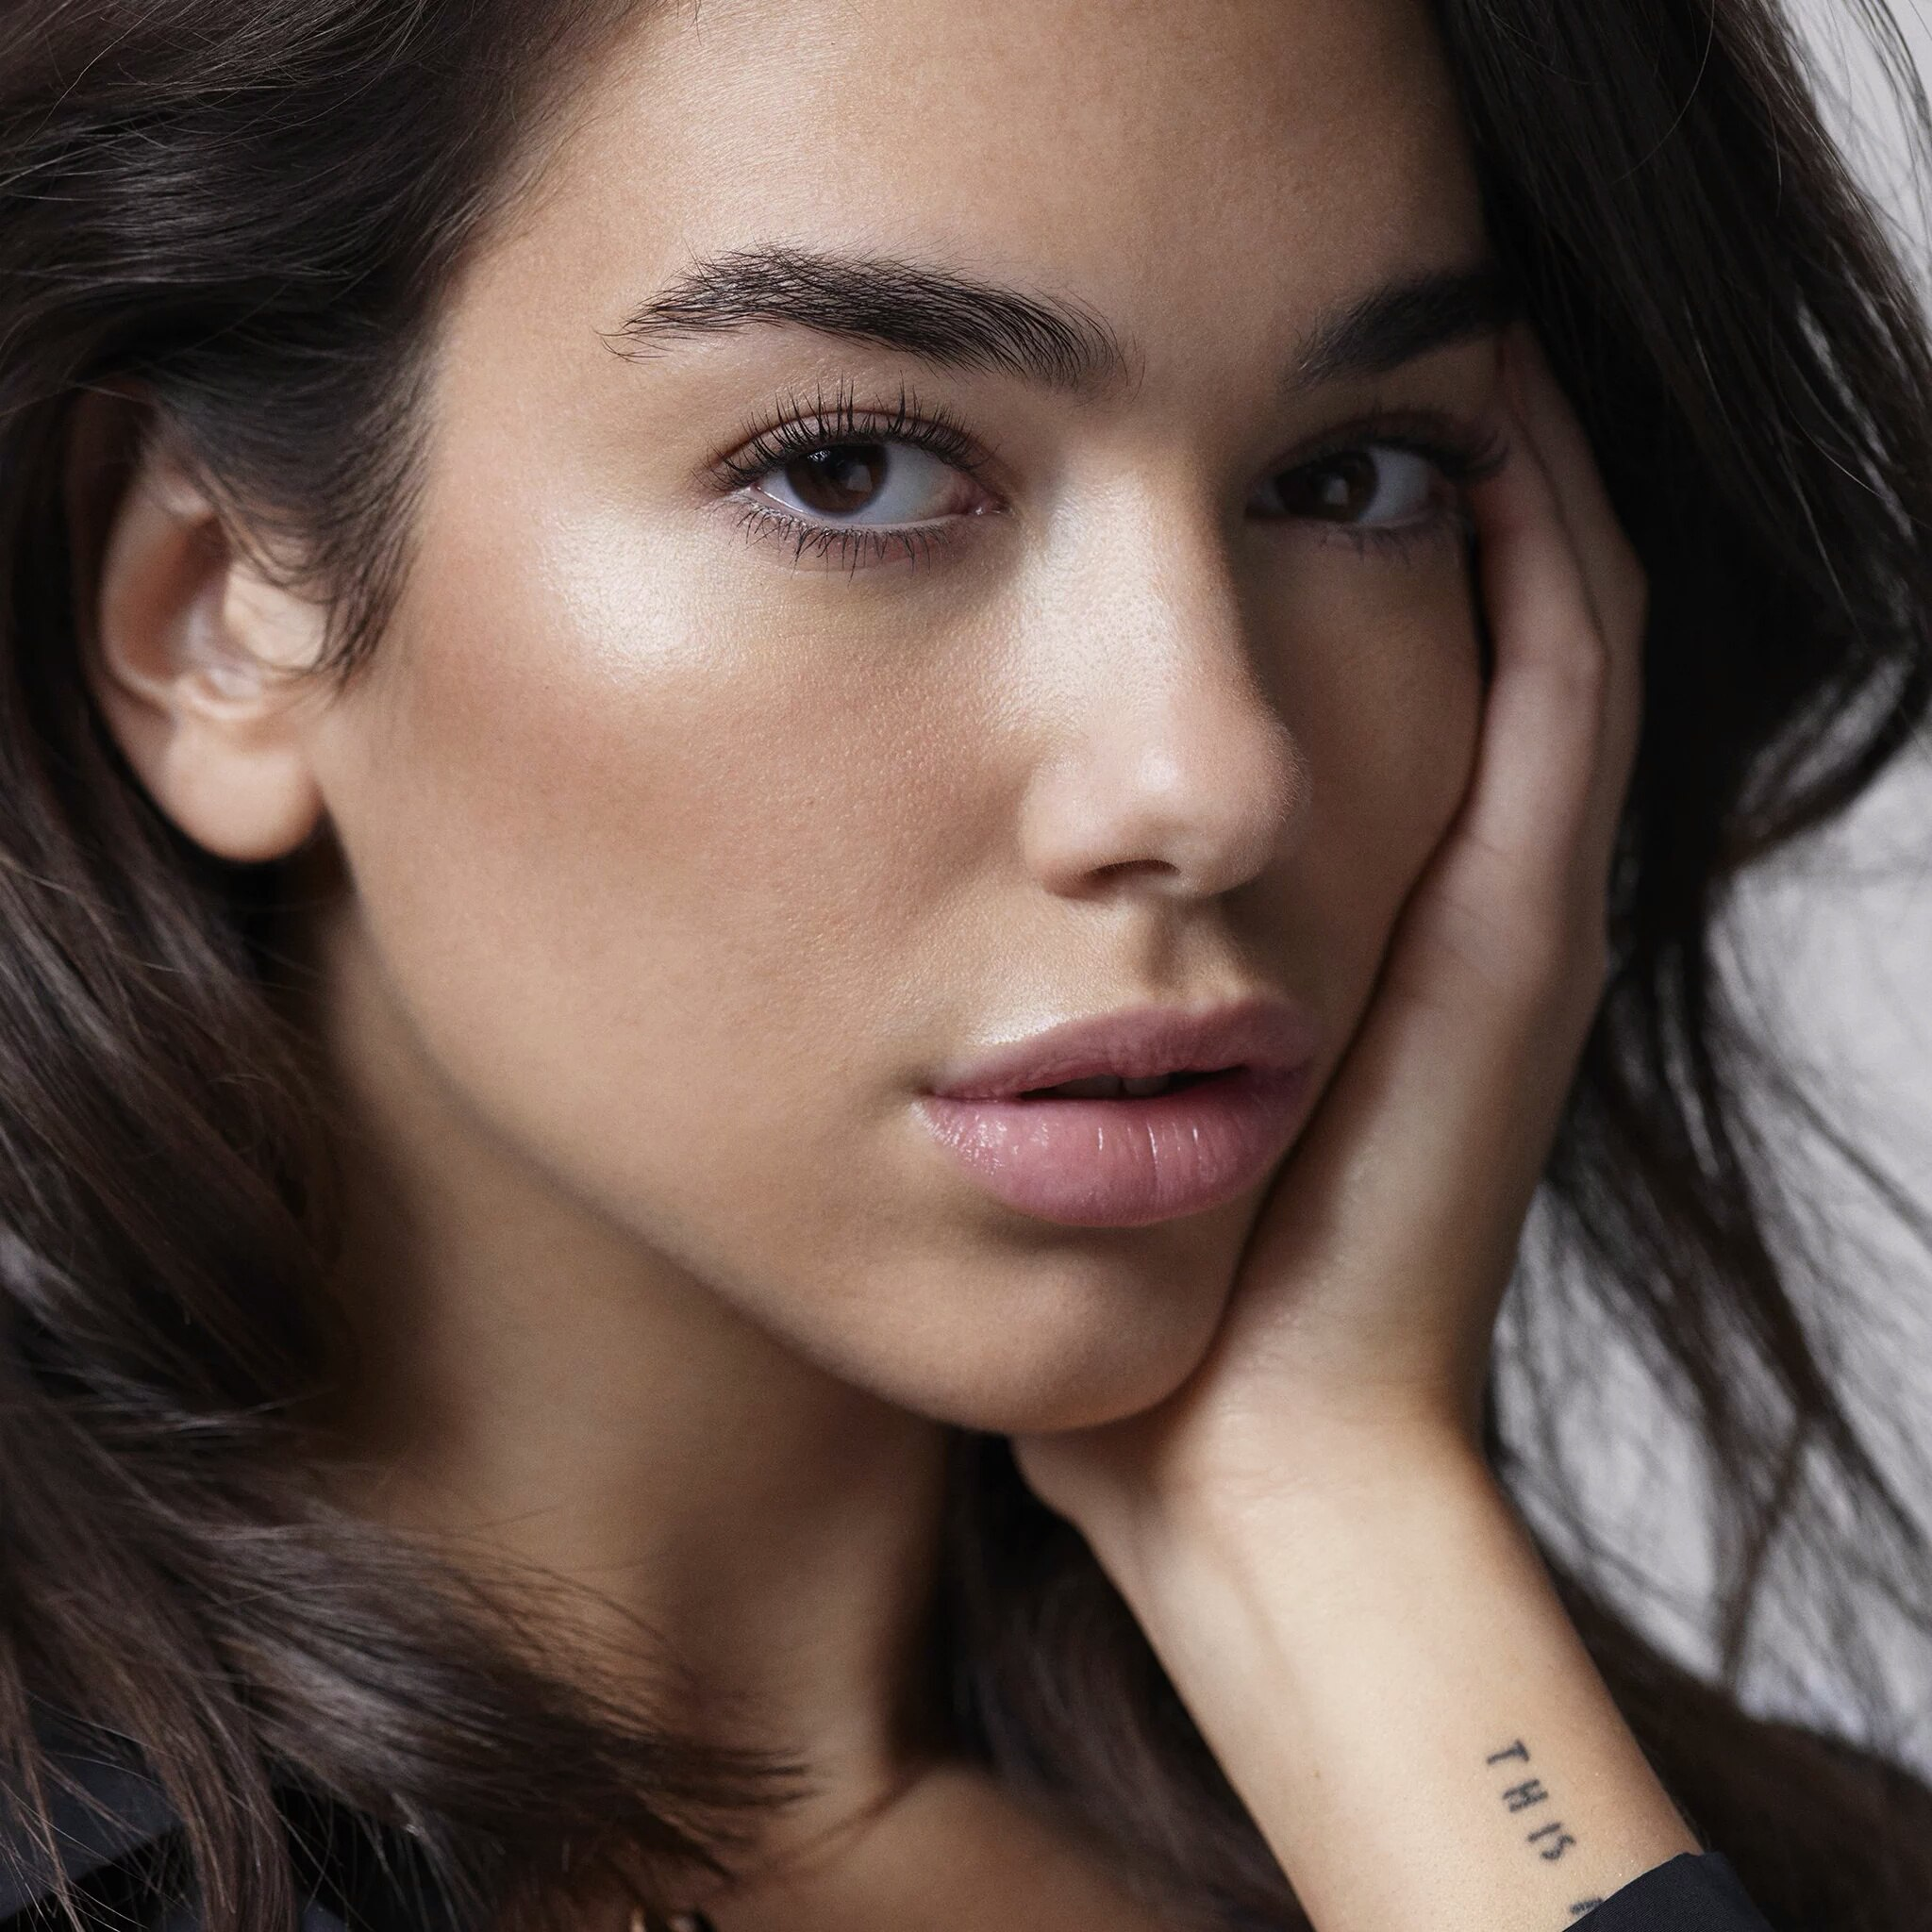 dua lipa - photo #18